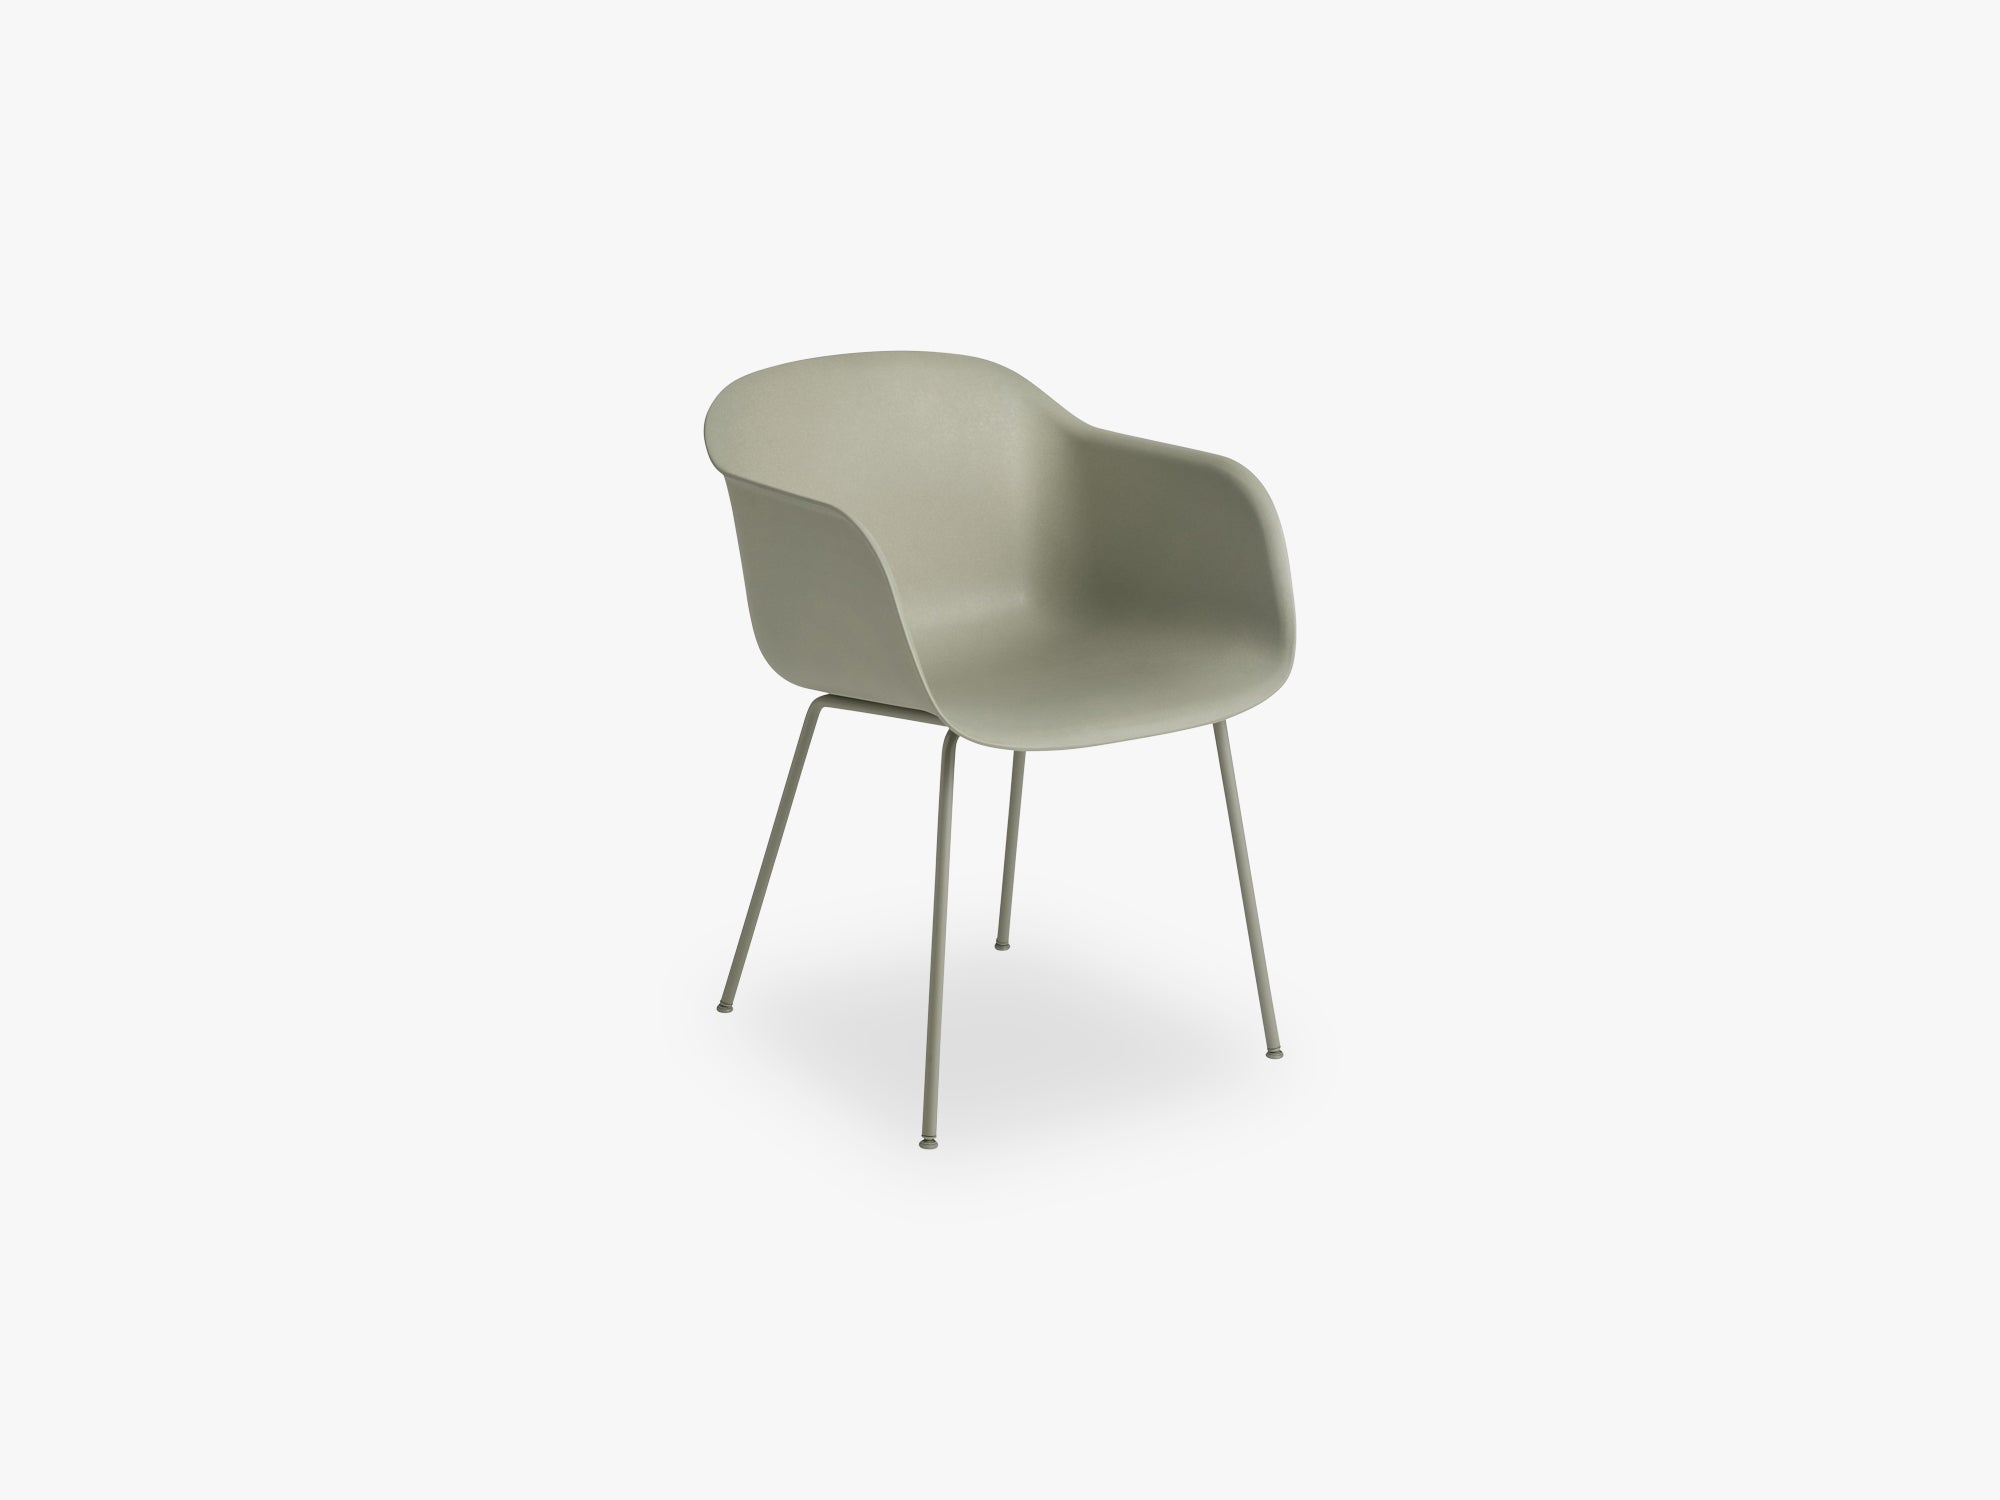 Fiber Armchair - Tube Base - Normal Shell, Dusty Green/Dusty Green fra Muuto